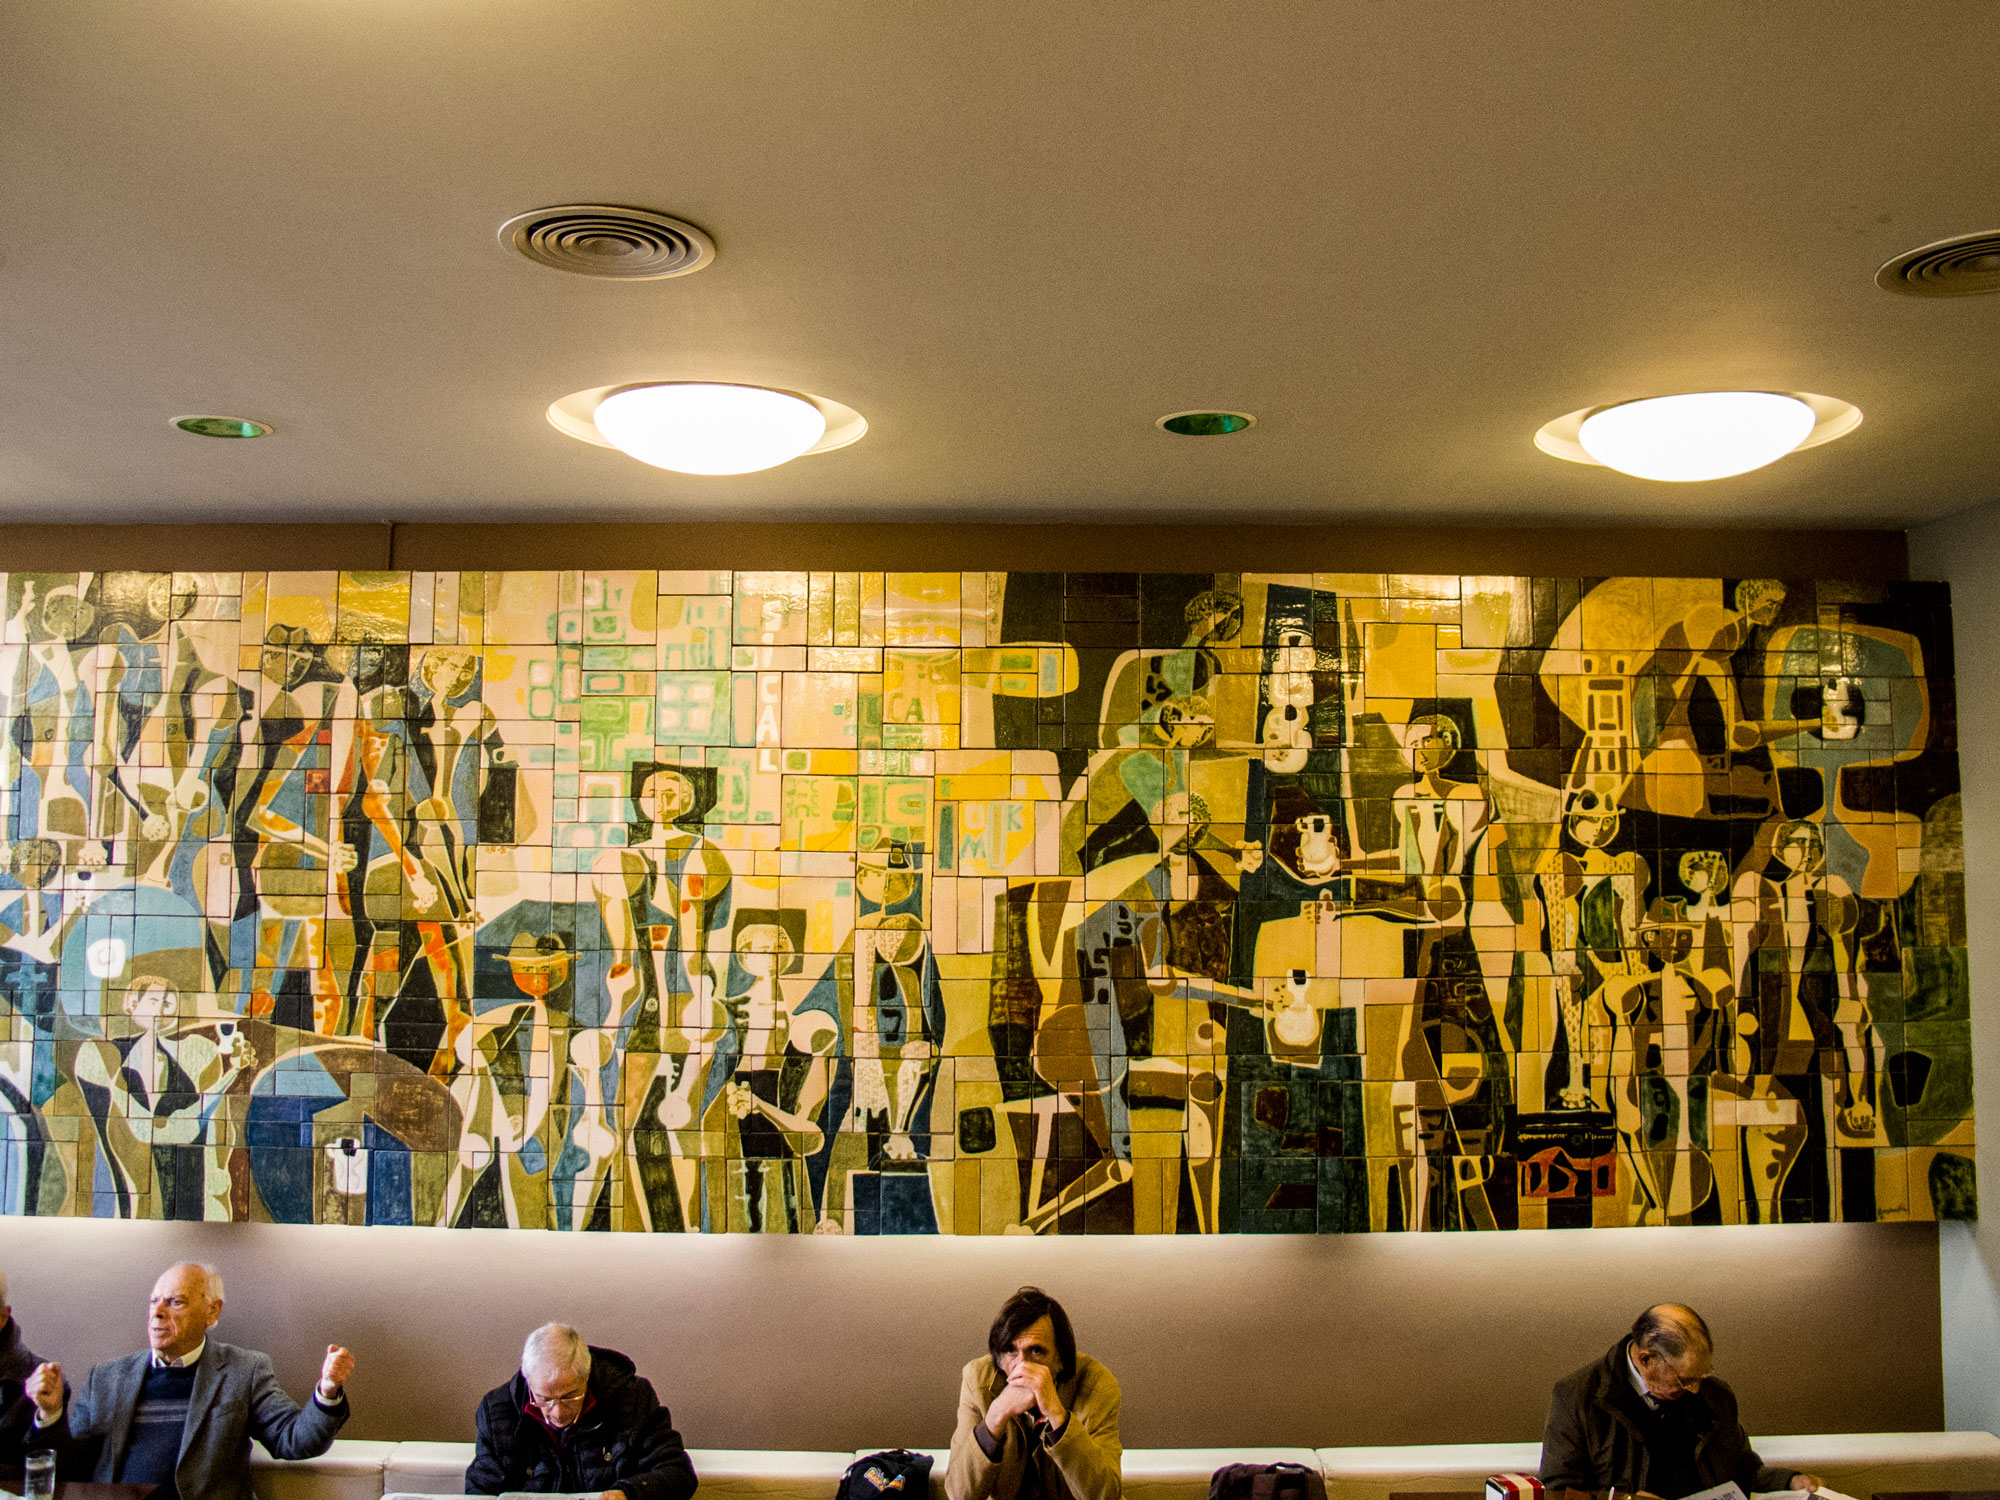 Tile mural by at Café Sical in Porto